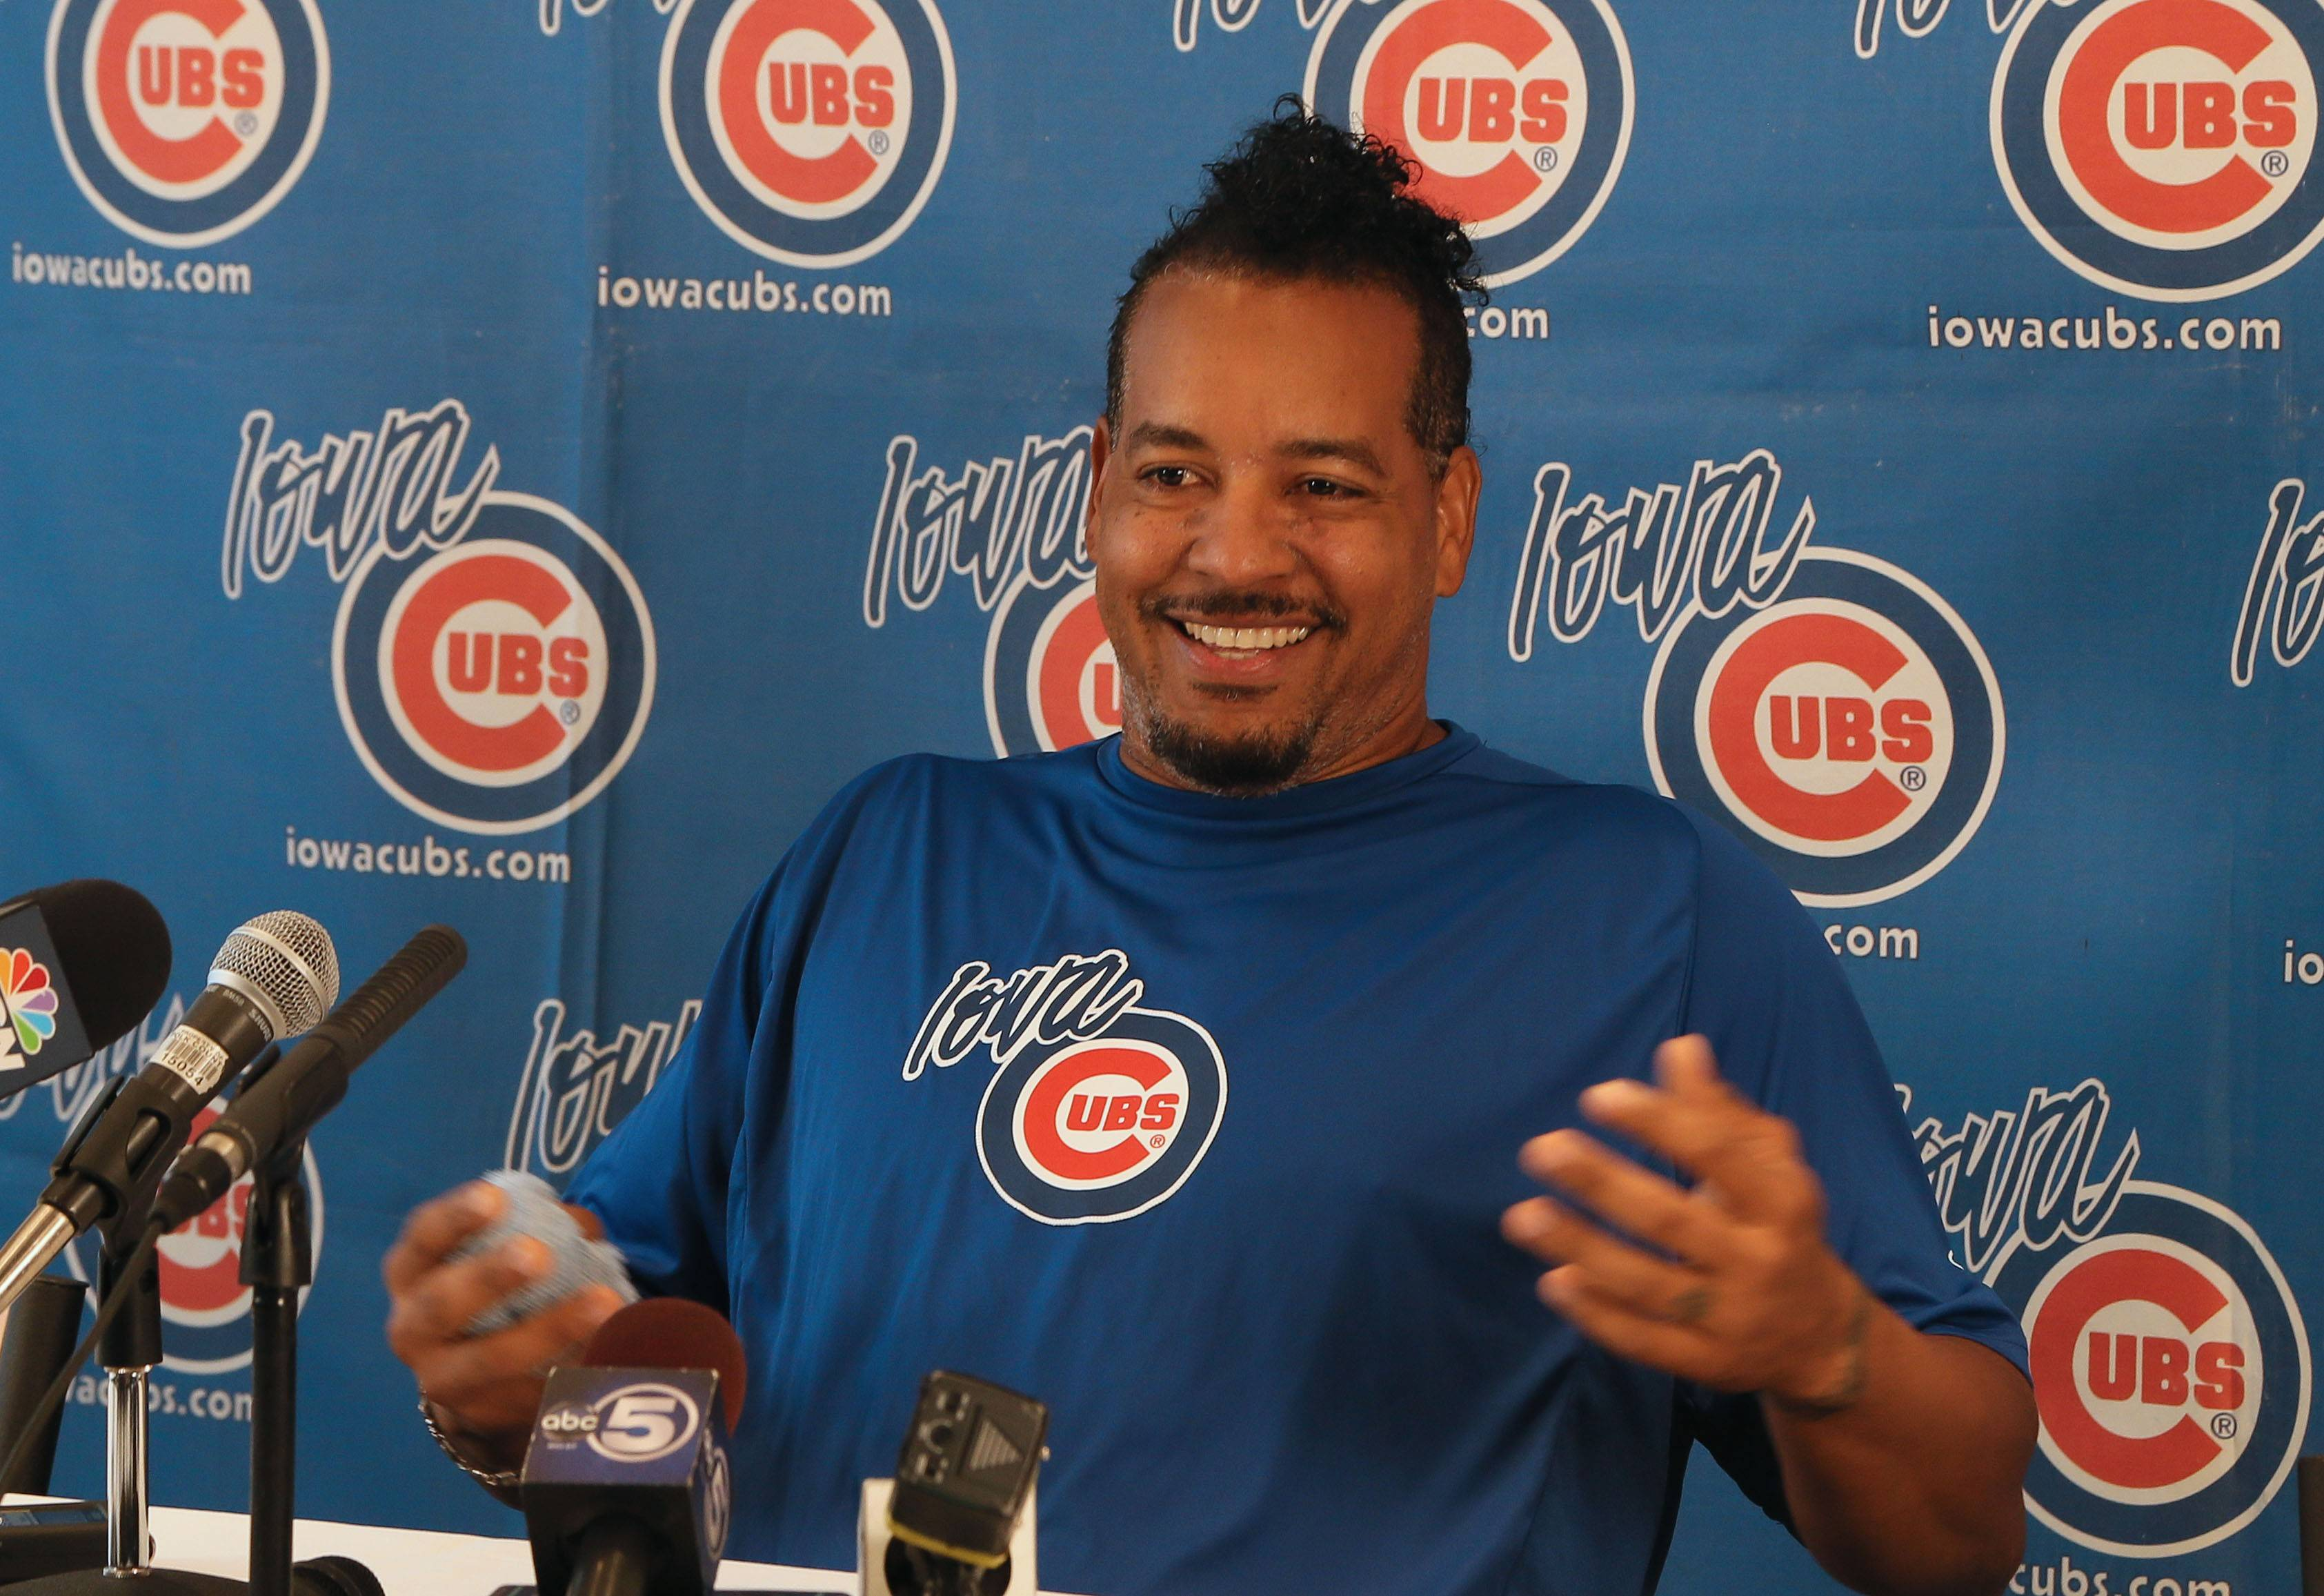 Manny Ramirez makes his debut for the Iowa Cubs during a news conference at Principal Park in Des Moines, Iowa, on June 30, 2014.